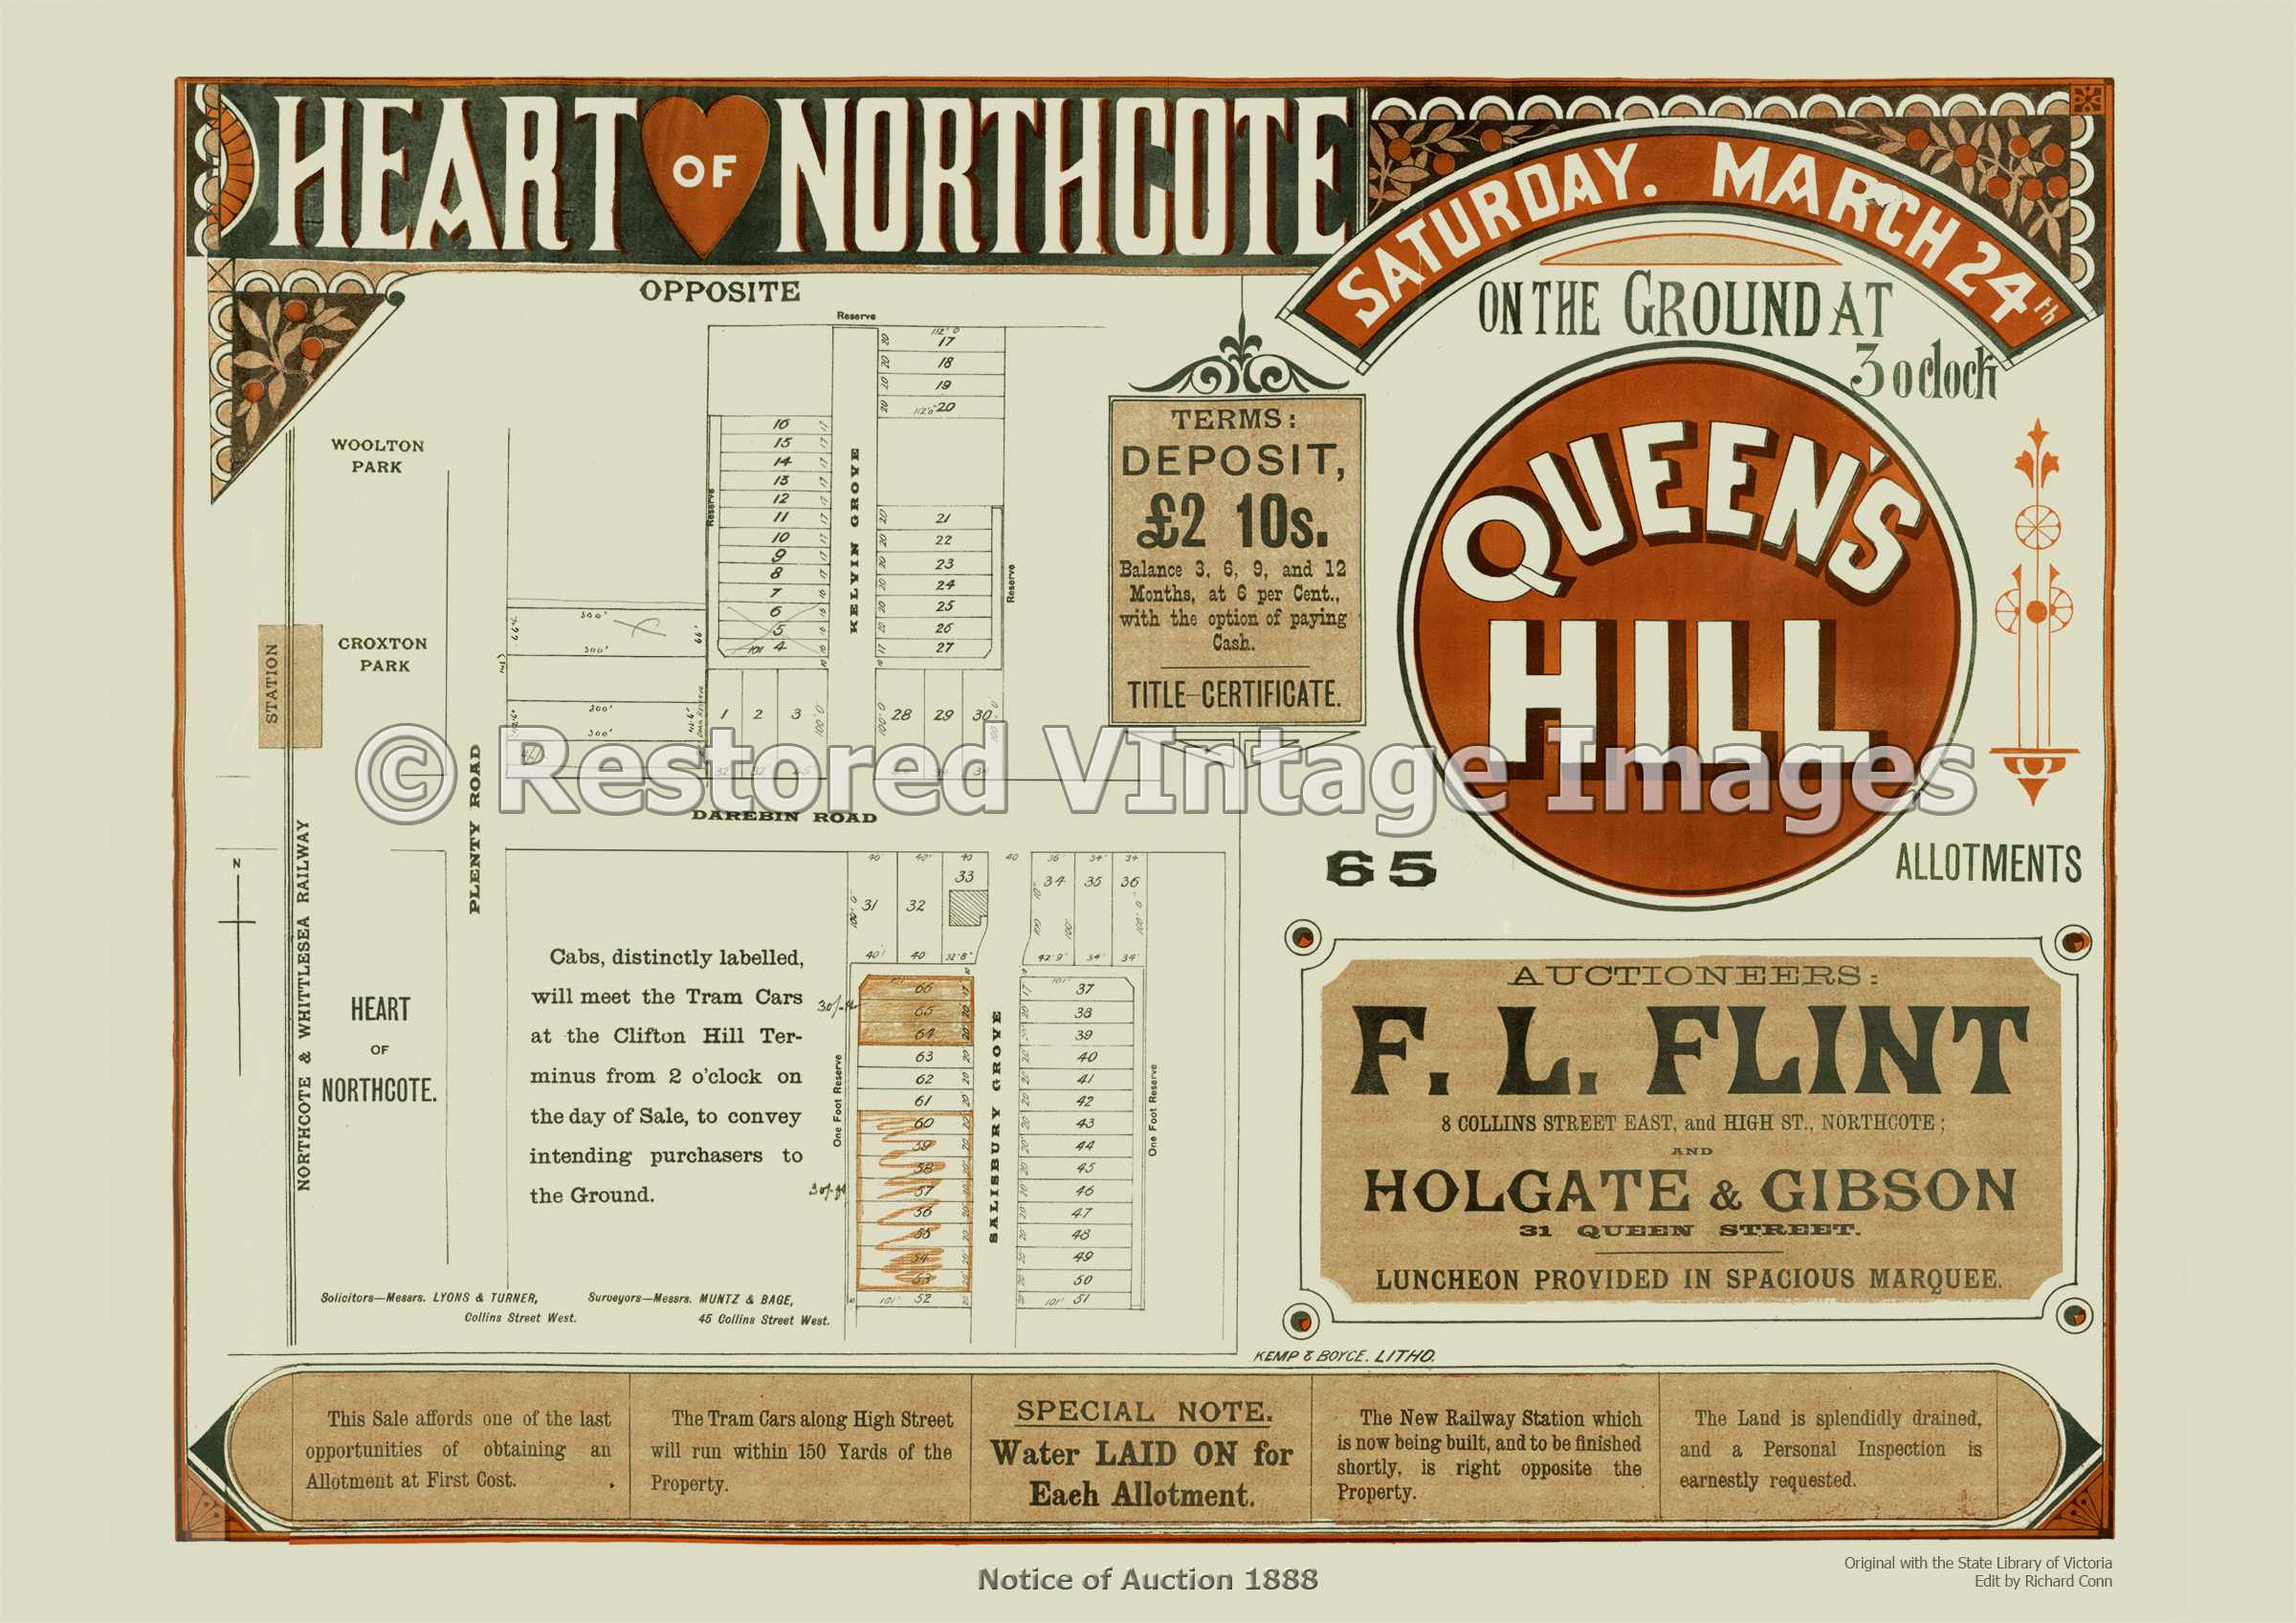 Queen's Hill- Heart Of Northcote 24th Of March 1888 – Thornbury